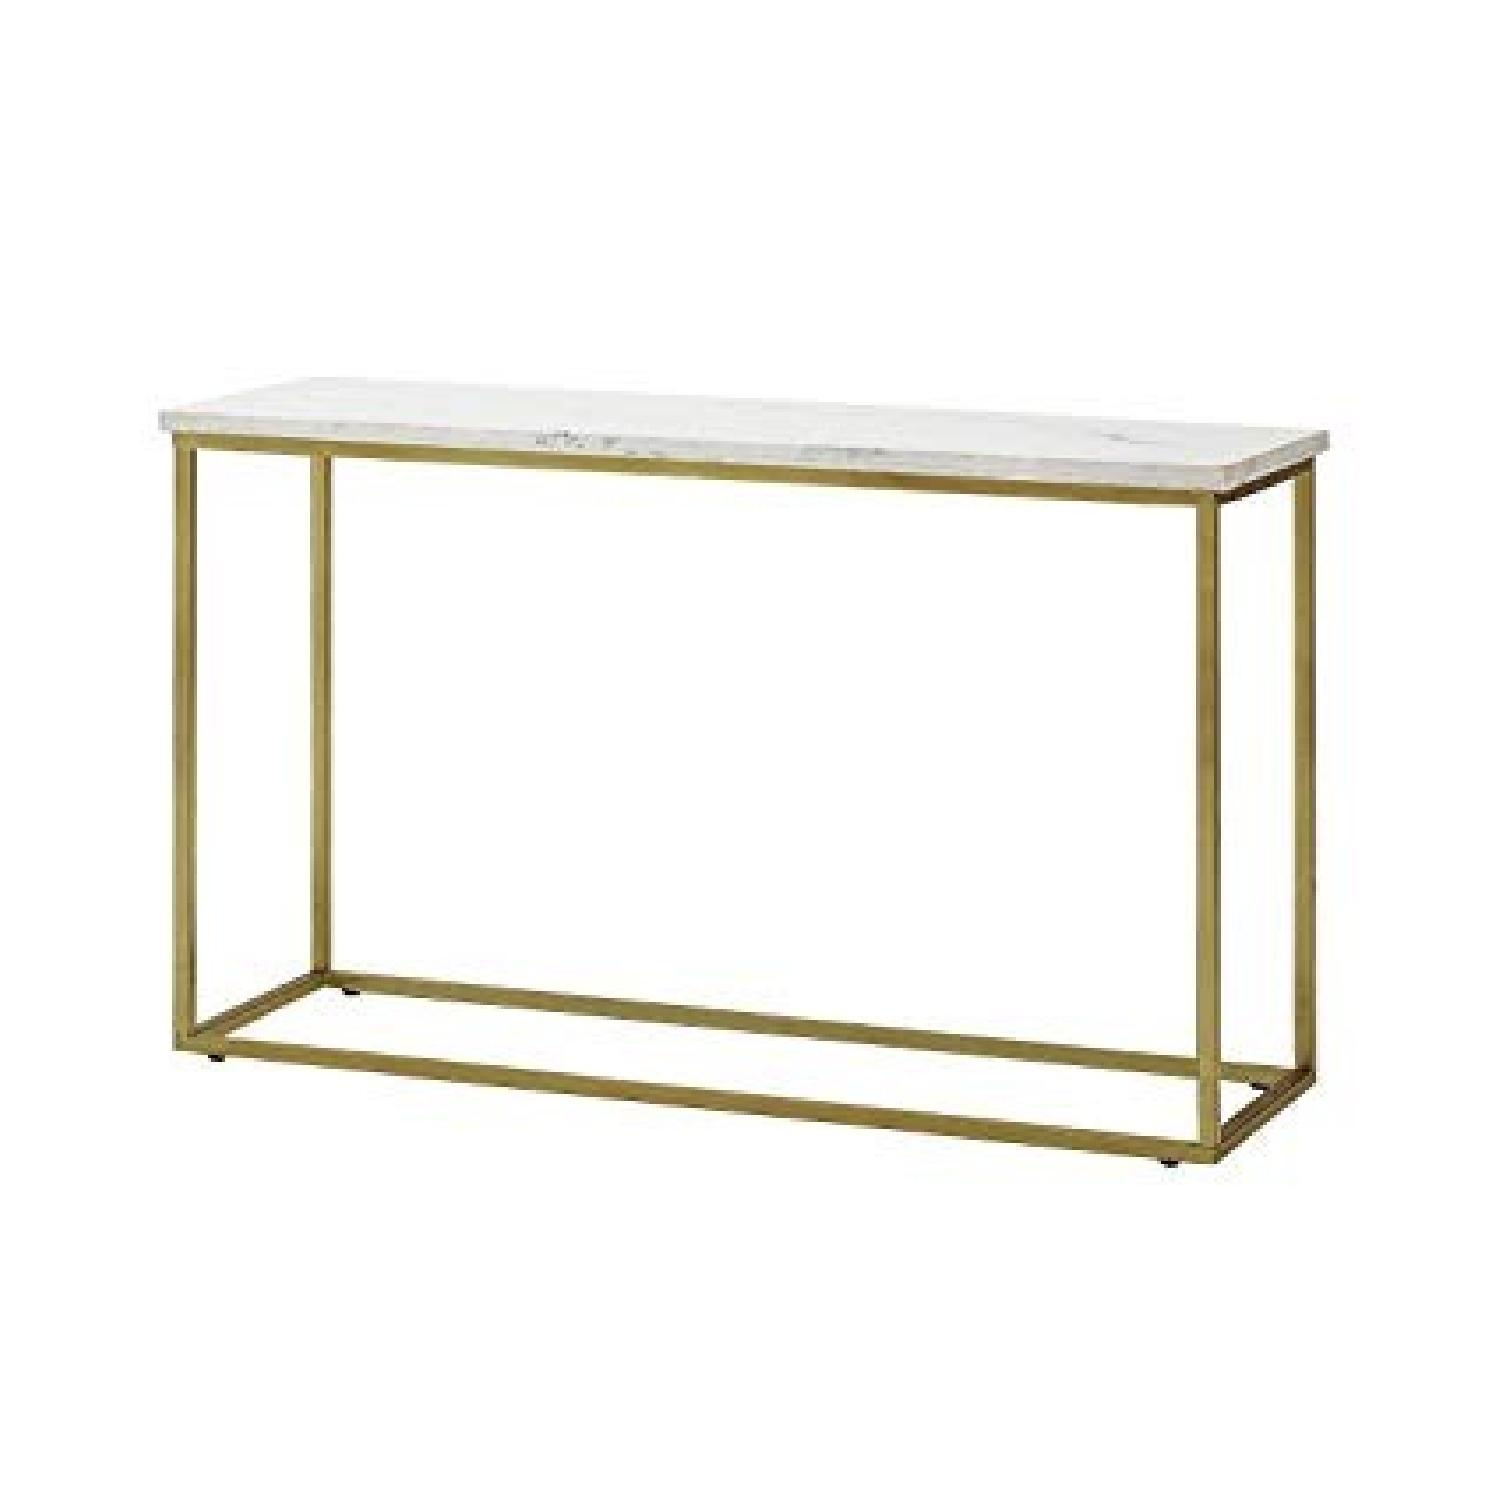 Marble Top Sofa Table w/ Brass Legs